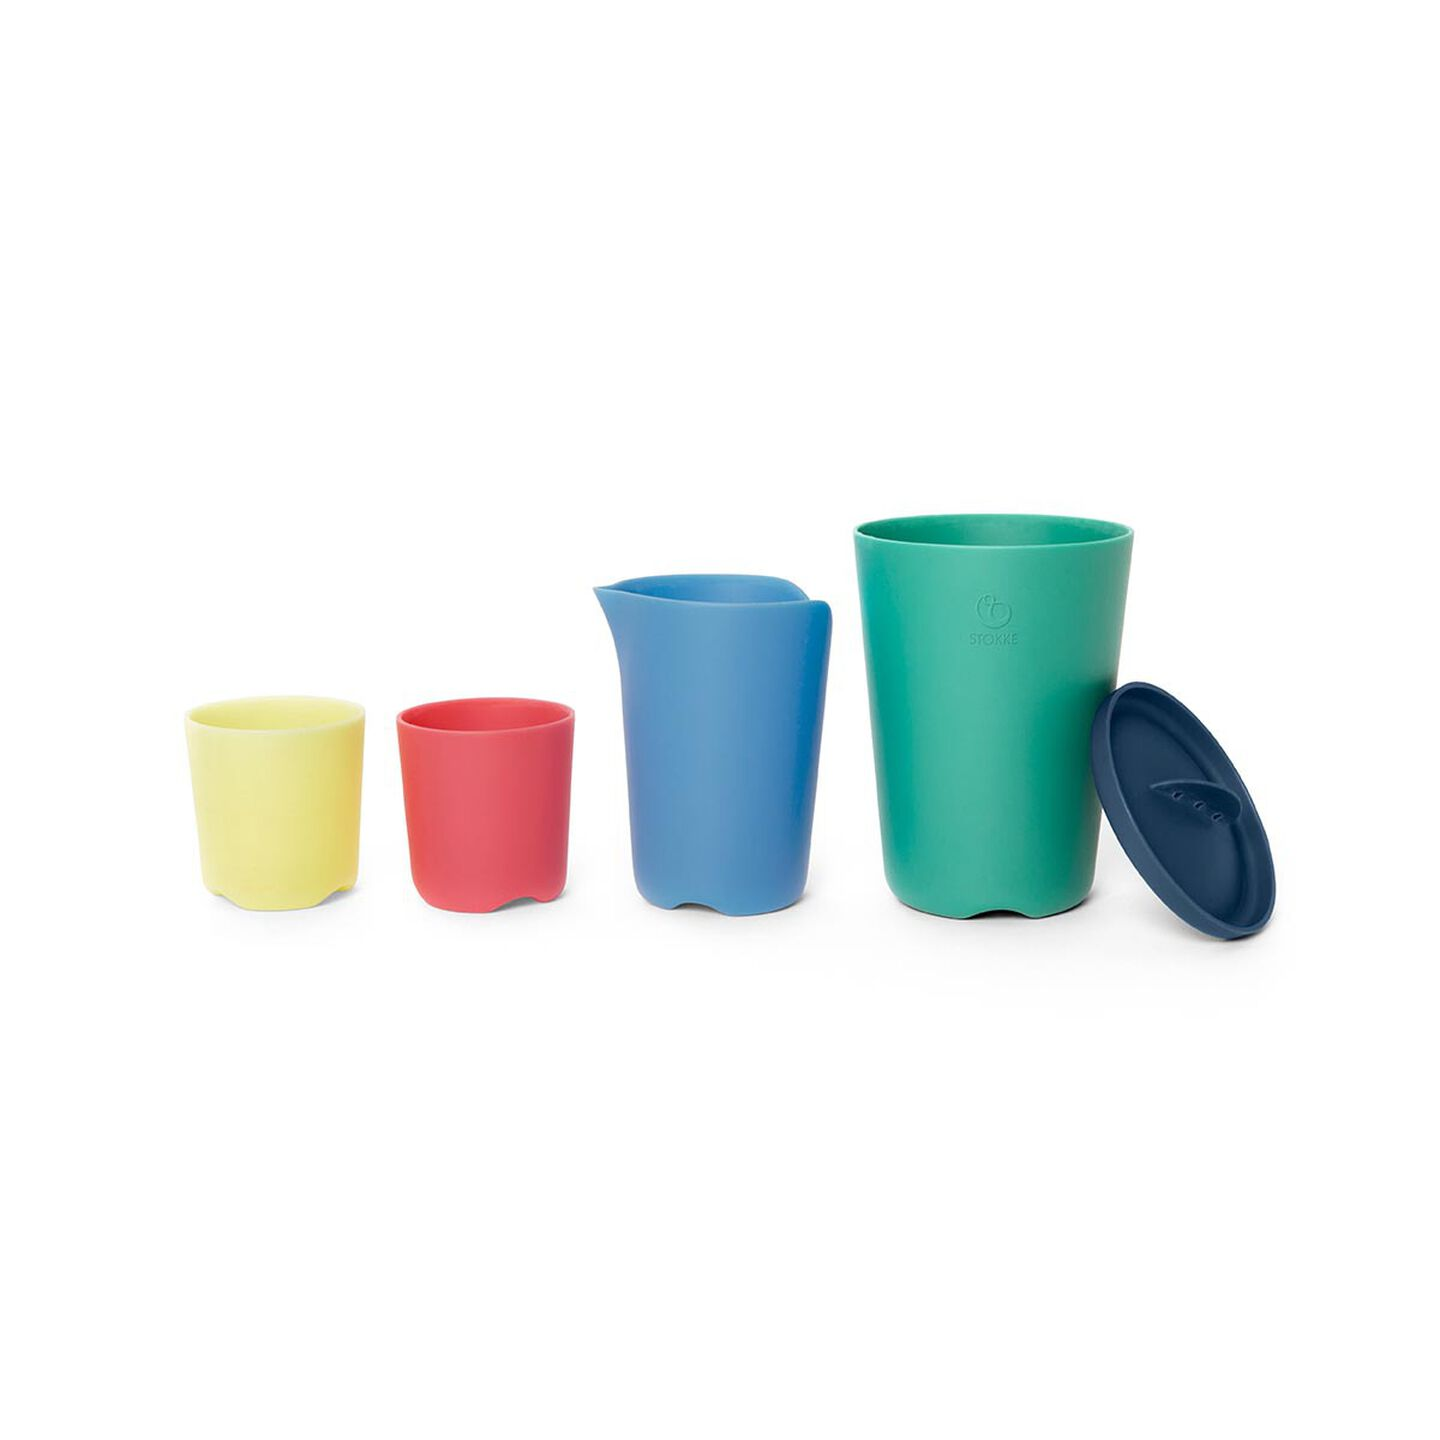 Toy Cups